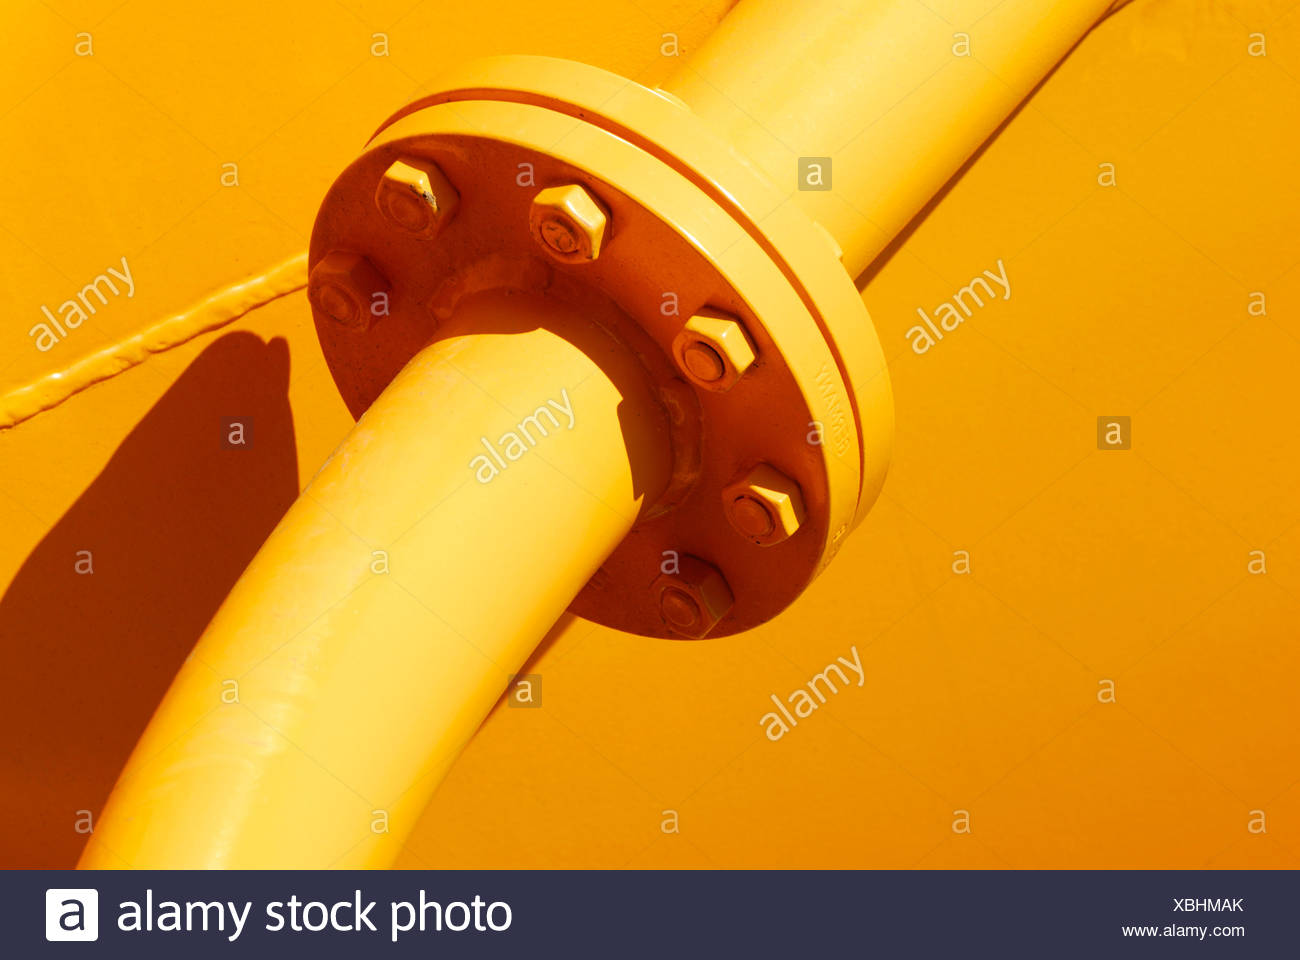 Yellow pipes joined by bolts at a flange, Emmendingen, Baden-Wuerttemberg, Germany - Stock Image